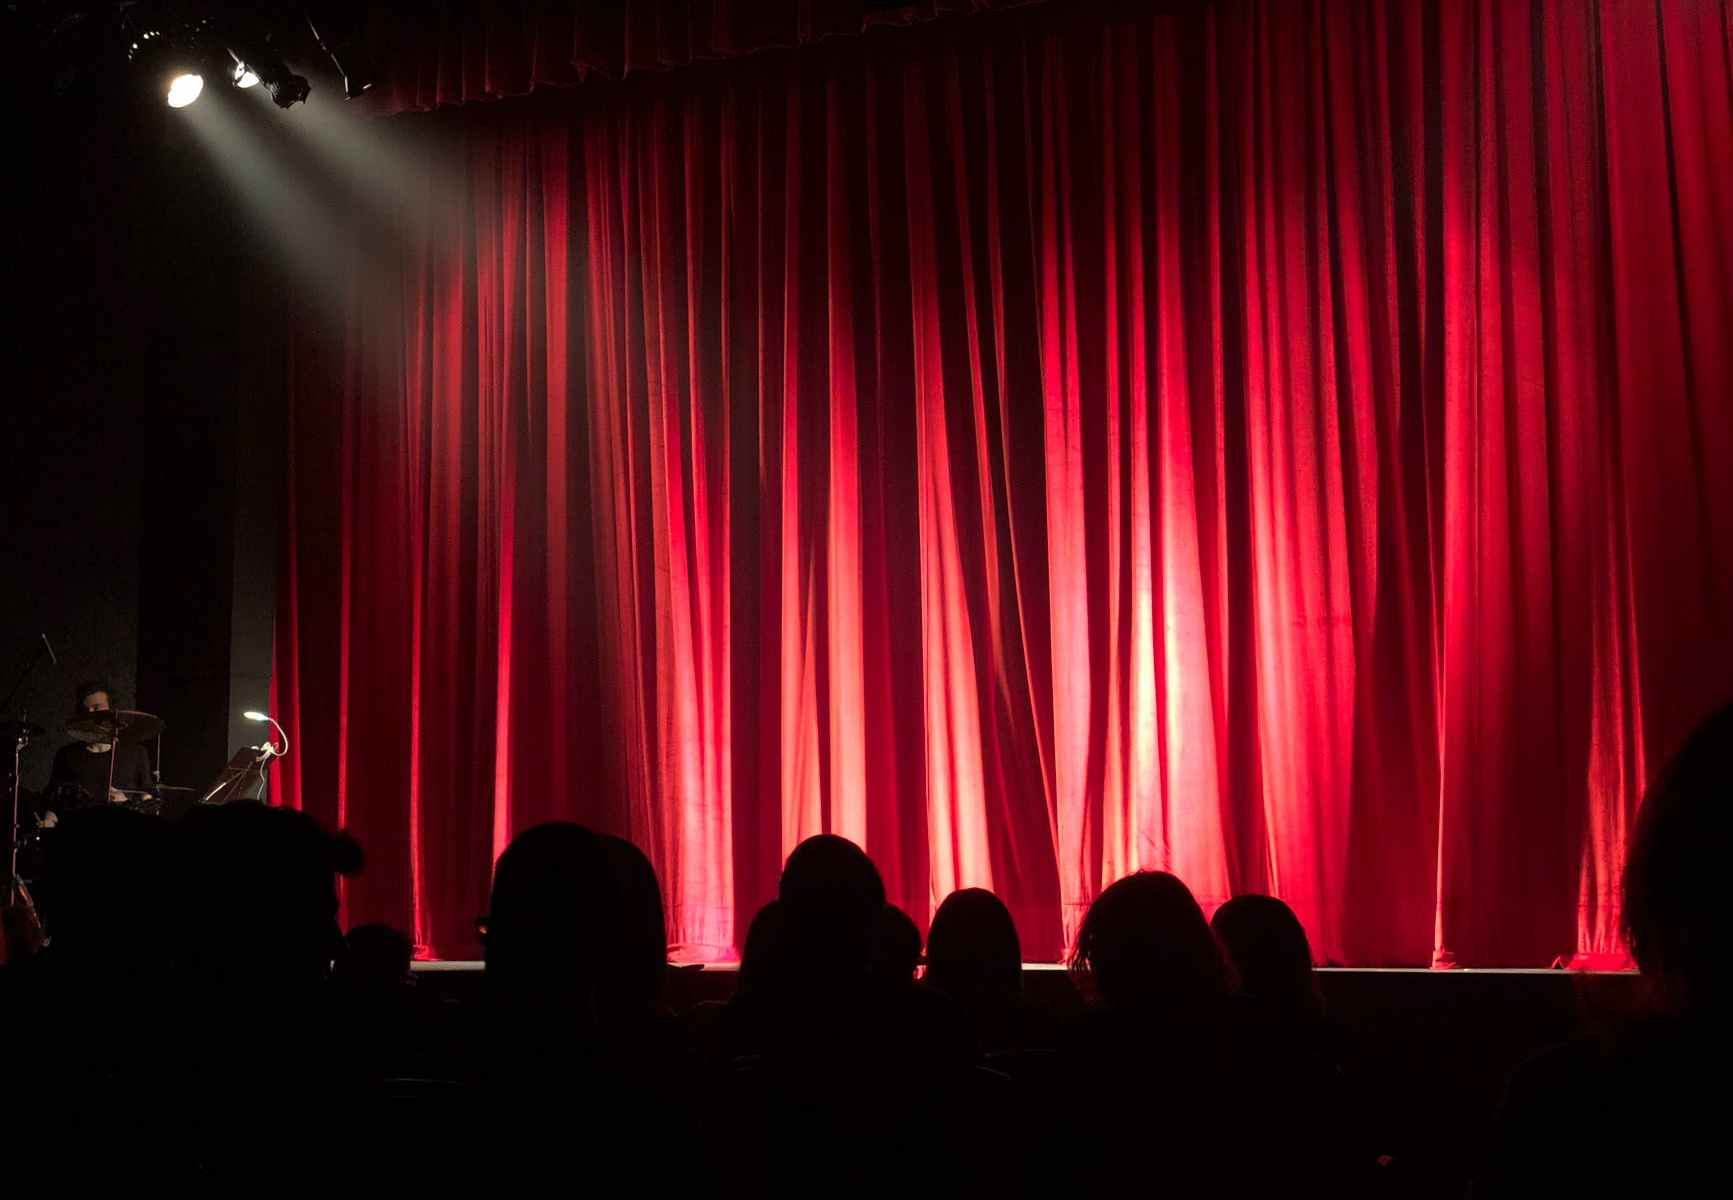 Silhouettes of people at the theatre with curtains closed.